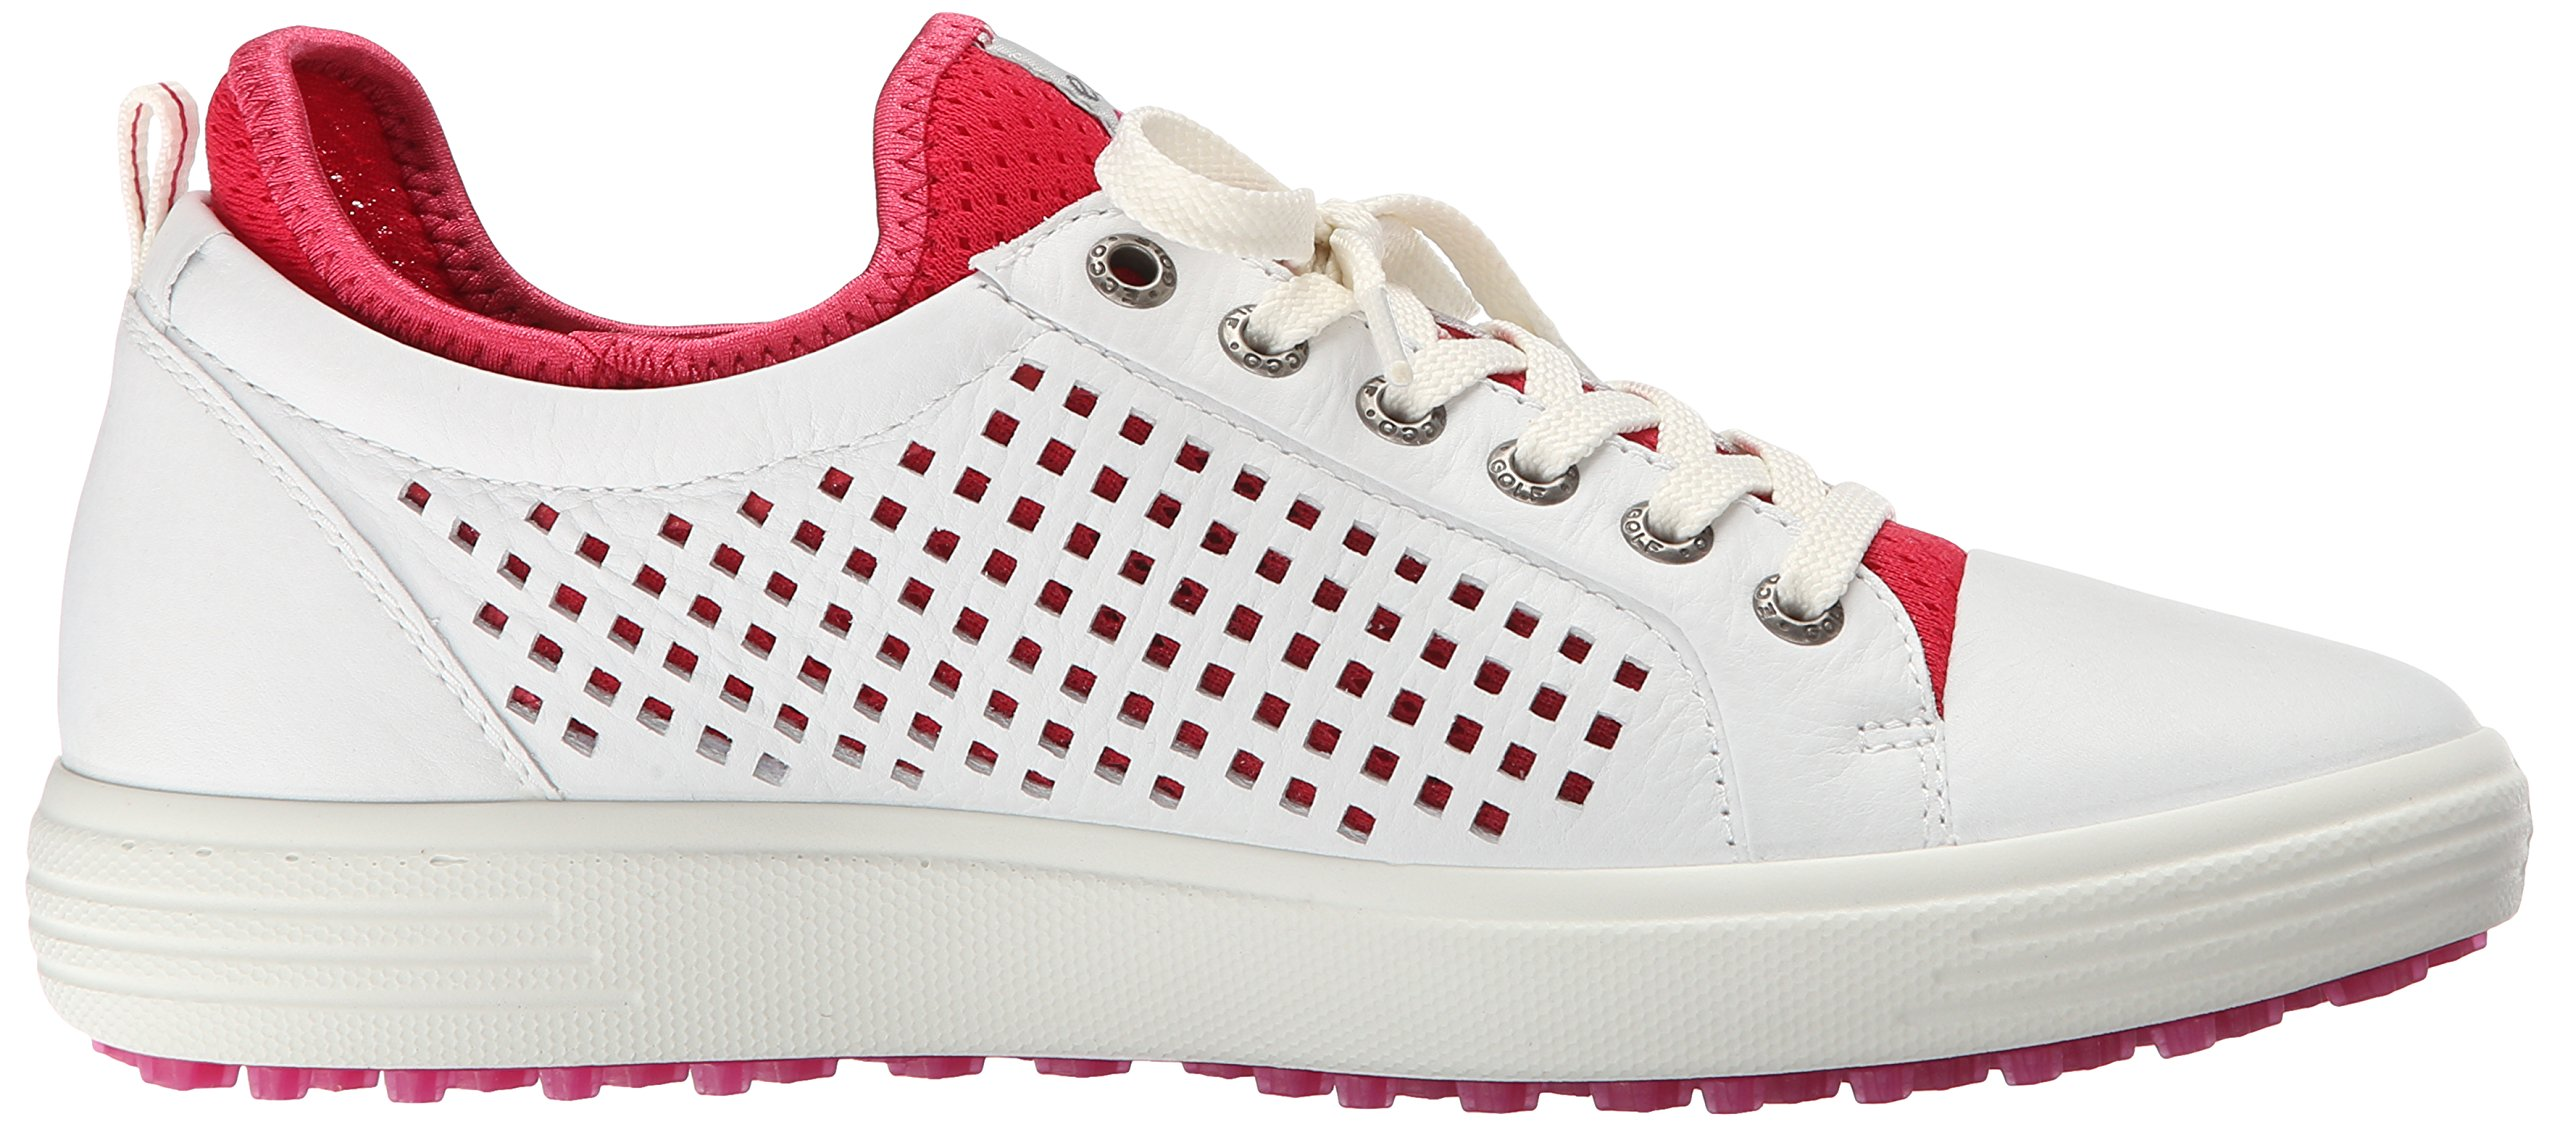 ECCO Women's Summer Hybrid Golf Shoe, White/Raspberry, 41 EU/10-10.5 M US by ECCO (Image #7)